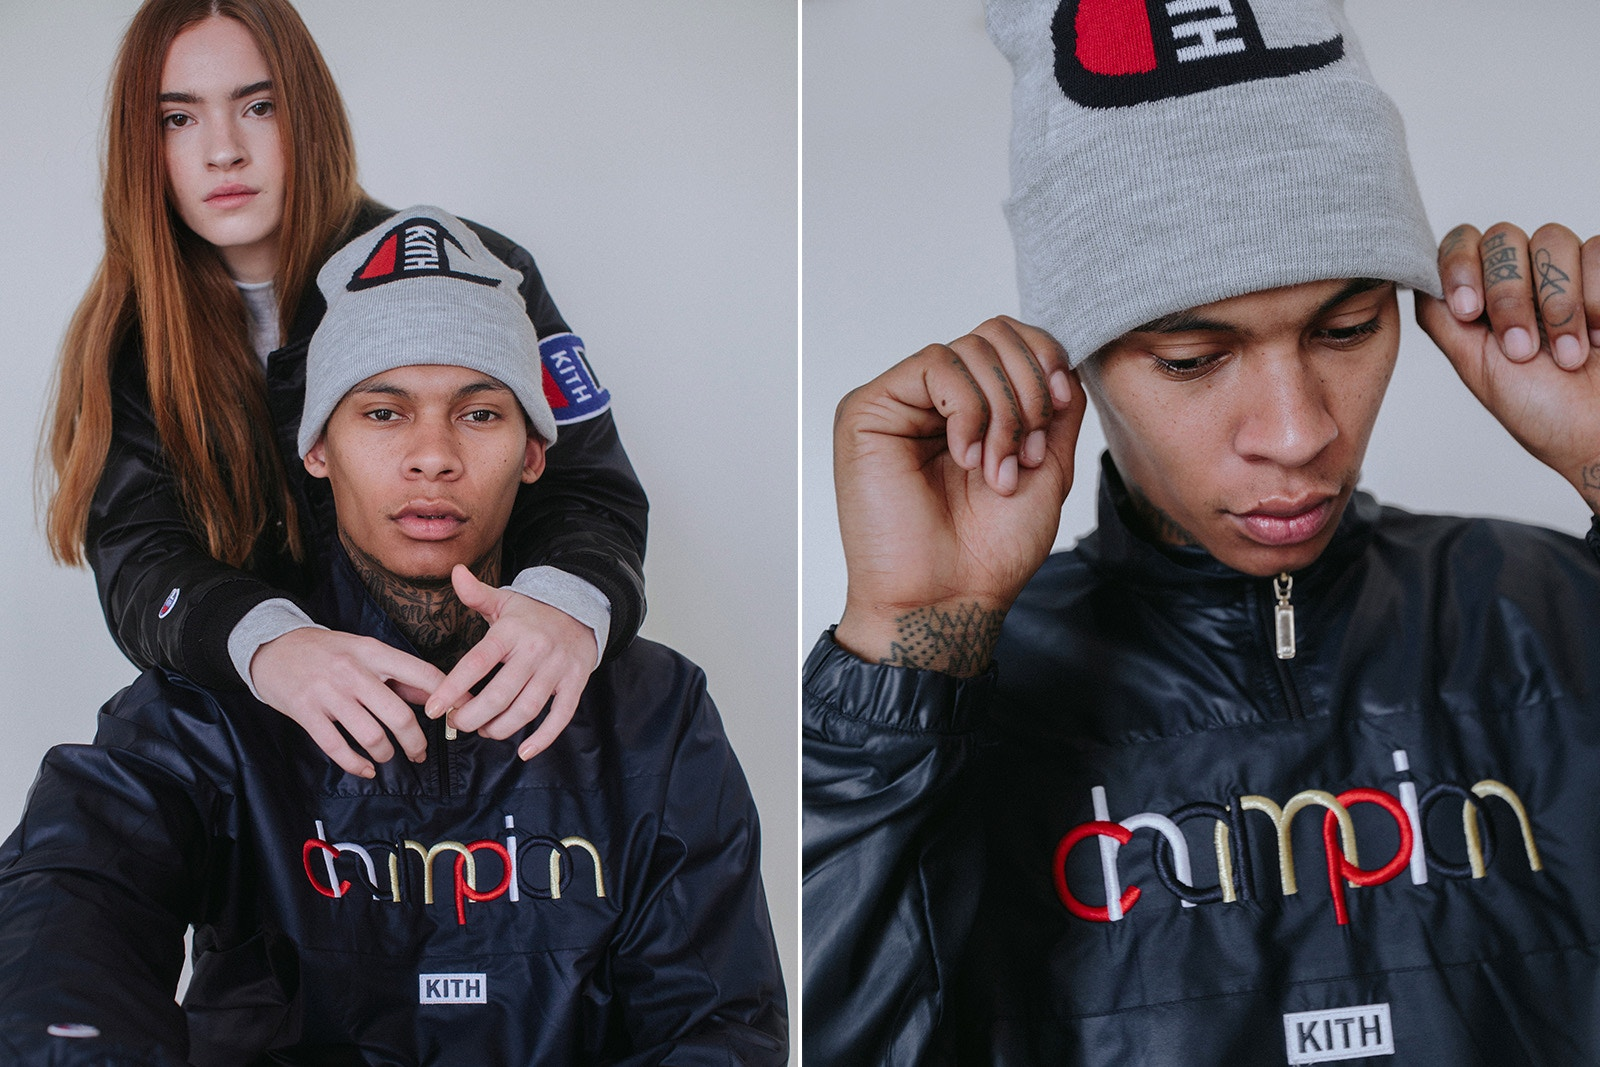 KITH rielabora il logo di Champion per una nuova capsule collection | Collater.al 10